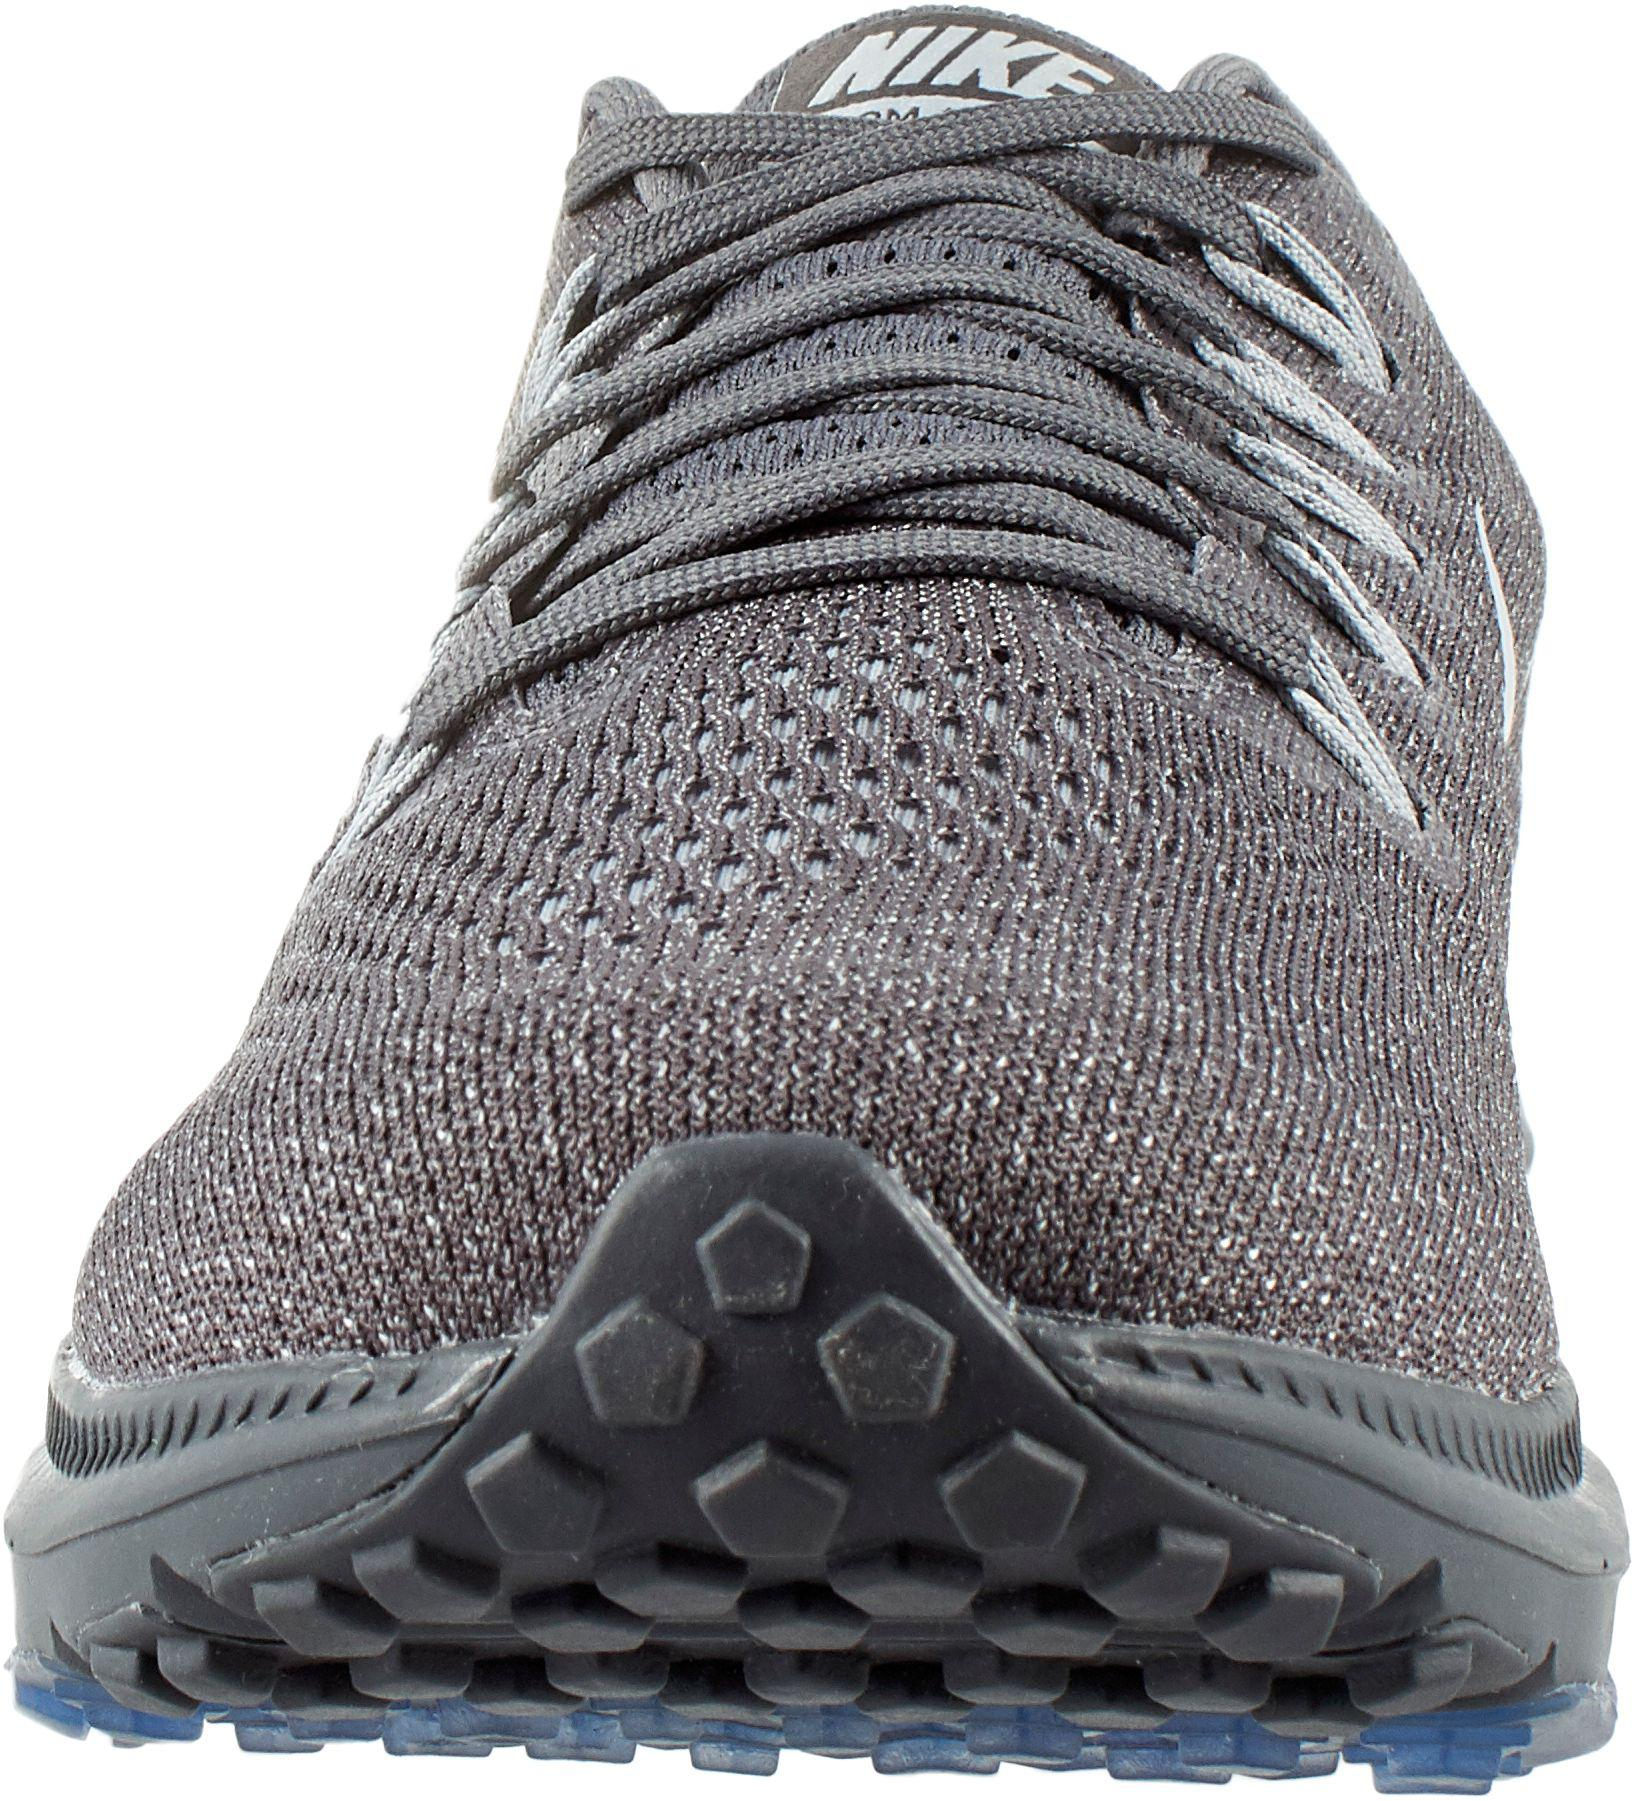 a96318b0644 Lyst - Nike Zoom All Out Low Running Shoes in Gray for Men